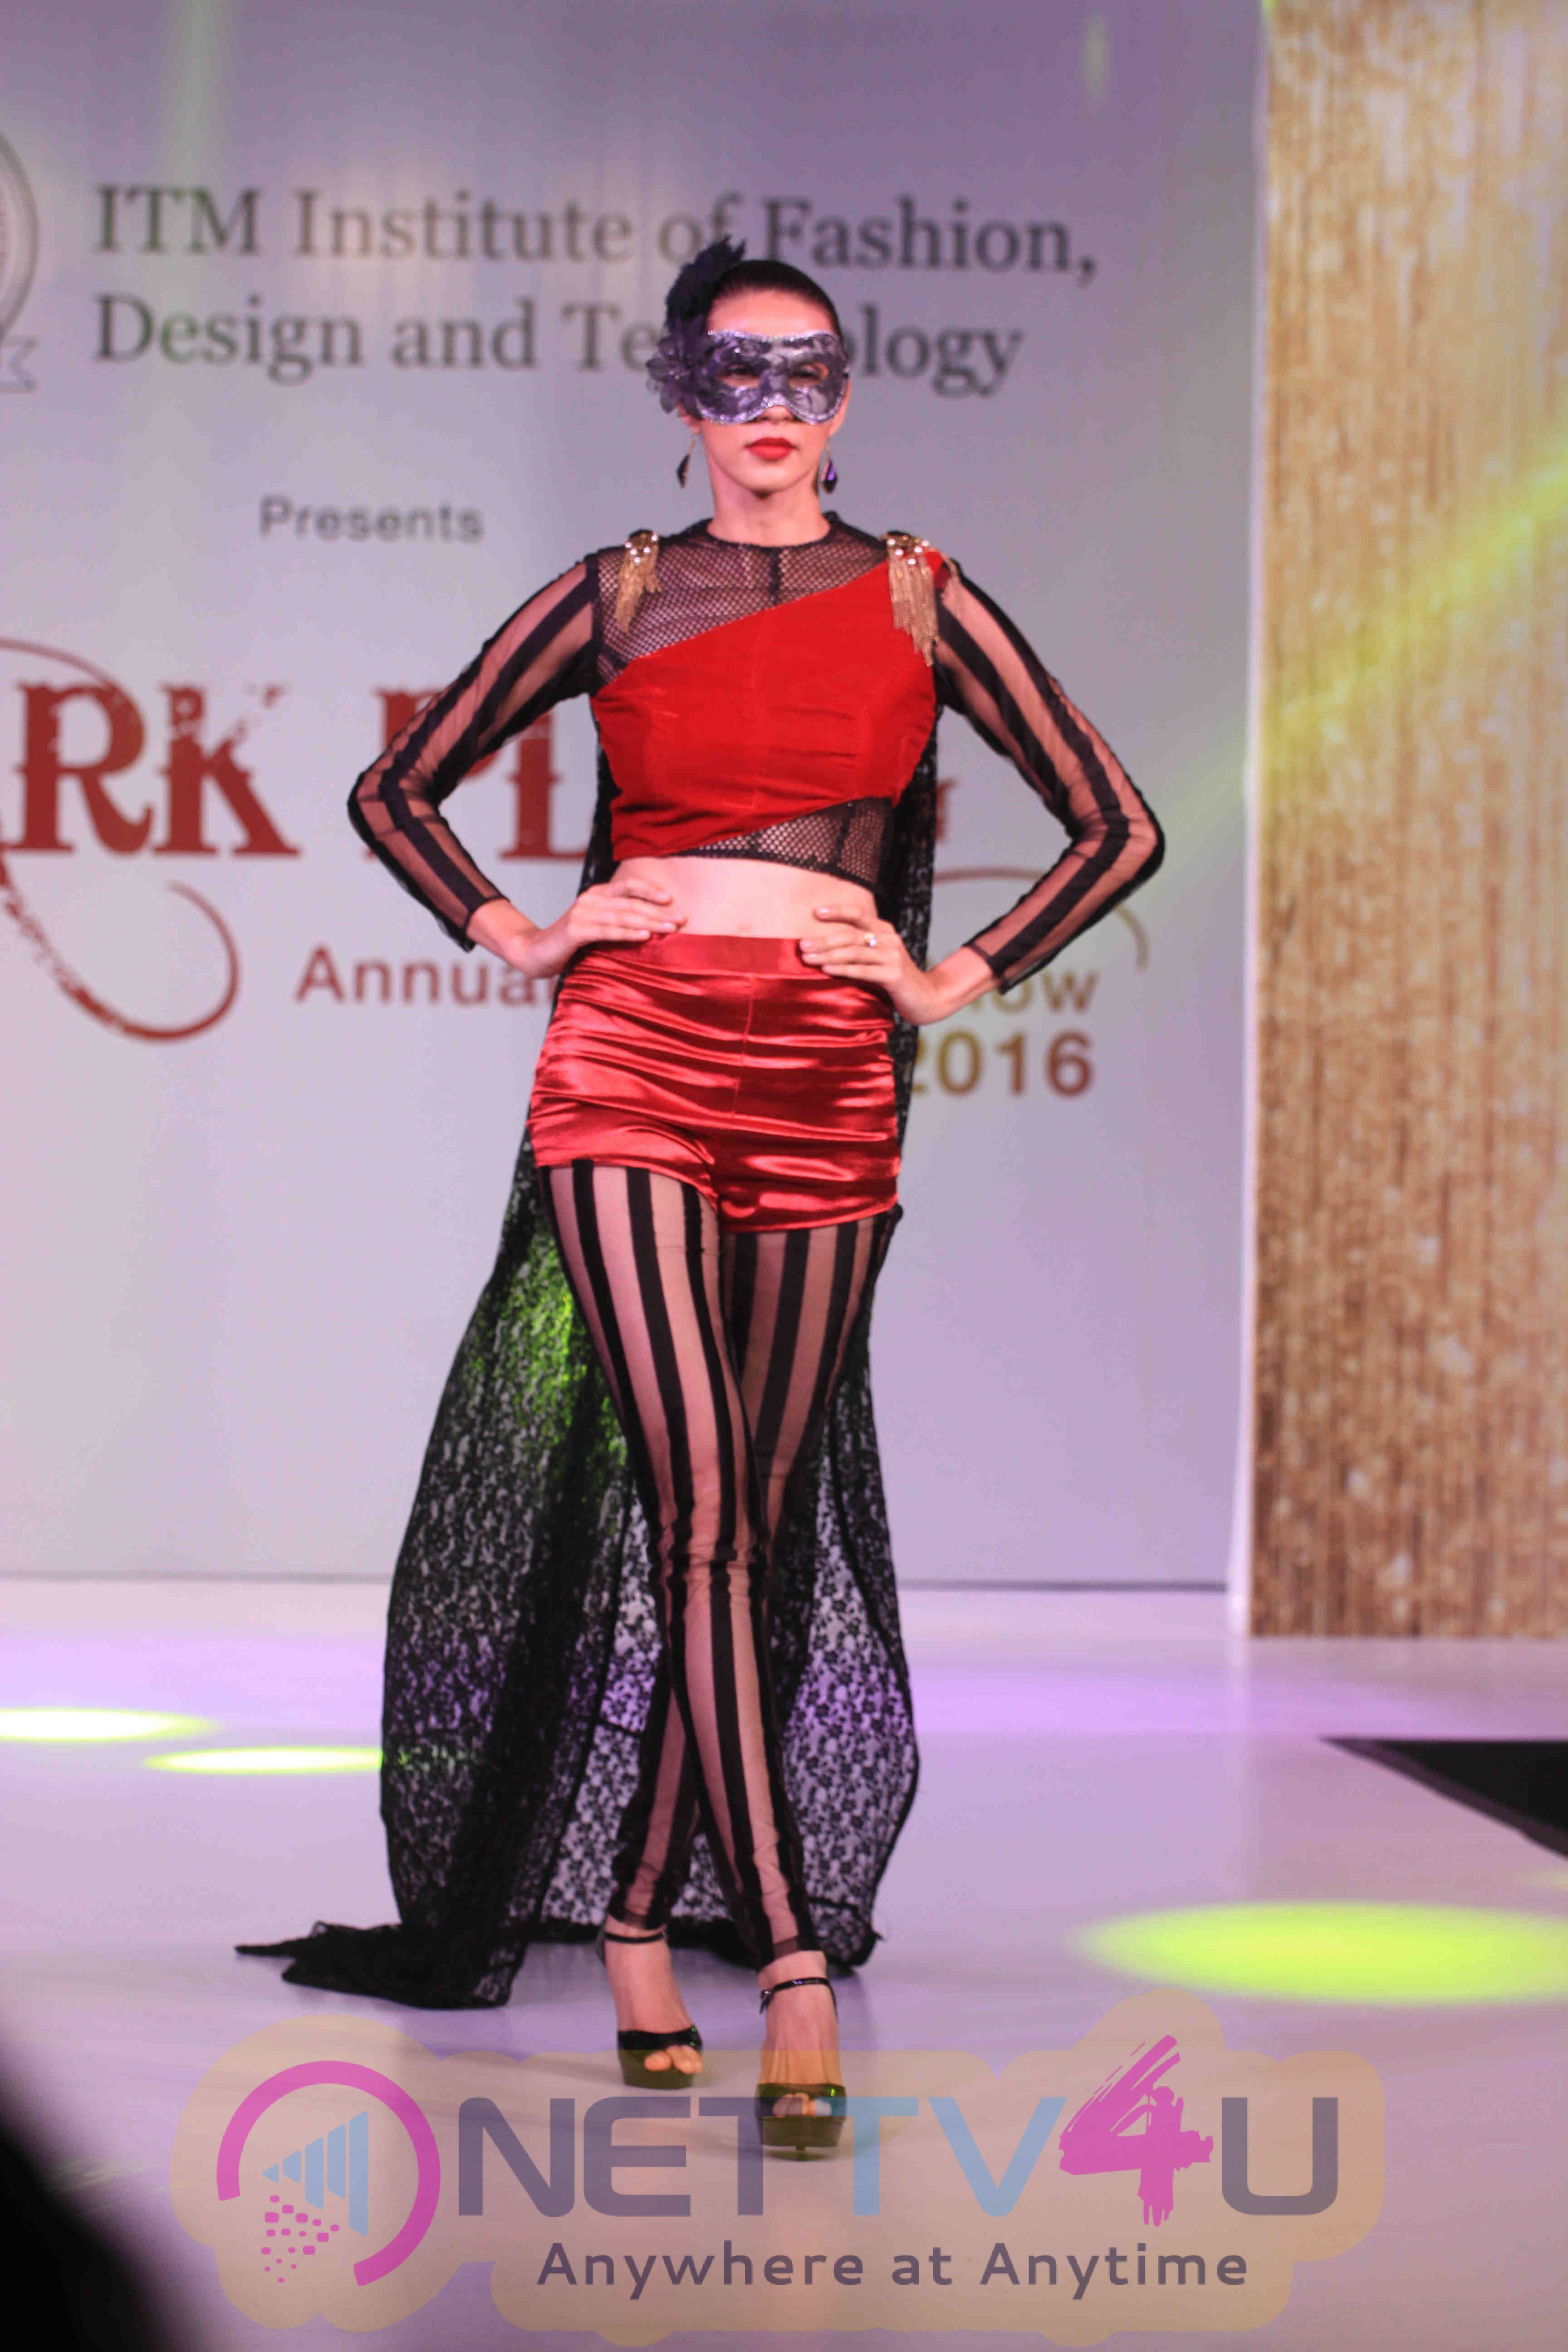 Itm Institute Of Fashion Design And Technology Invites You To Spark Plug Annual Design Show Good Looking Stills 291085 Movie Press Meet Pics Latest Event Images Stills